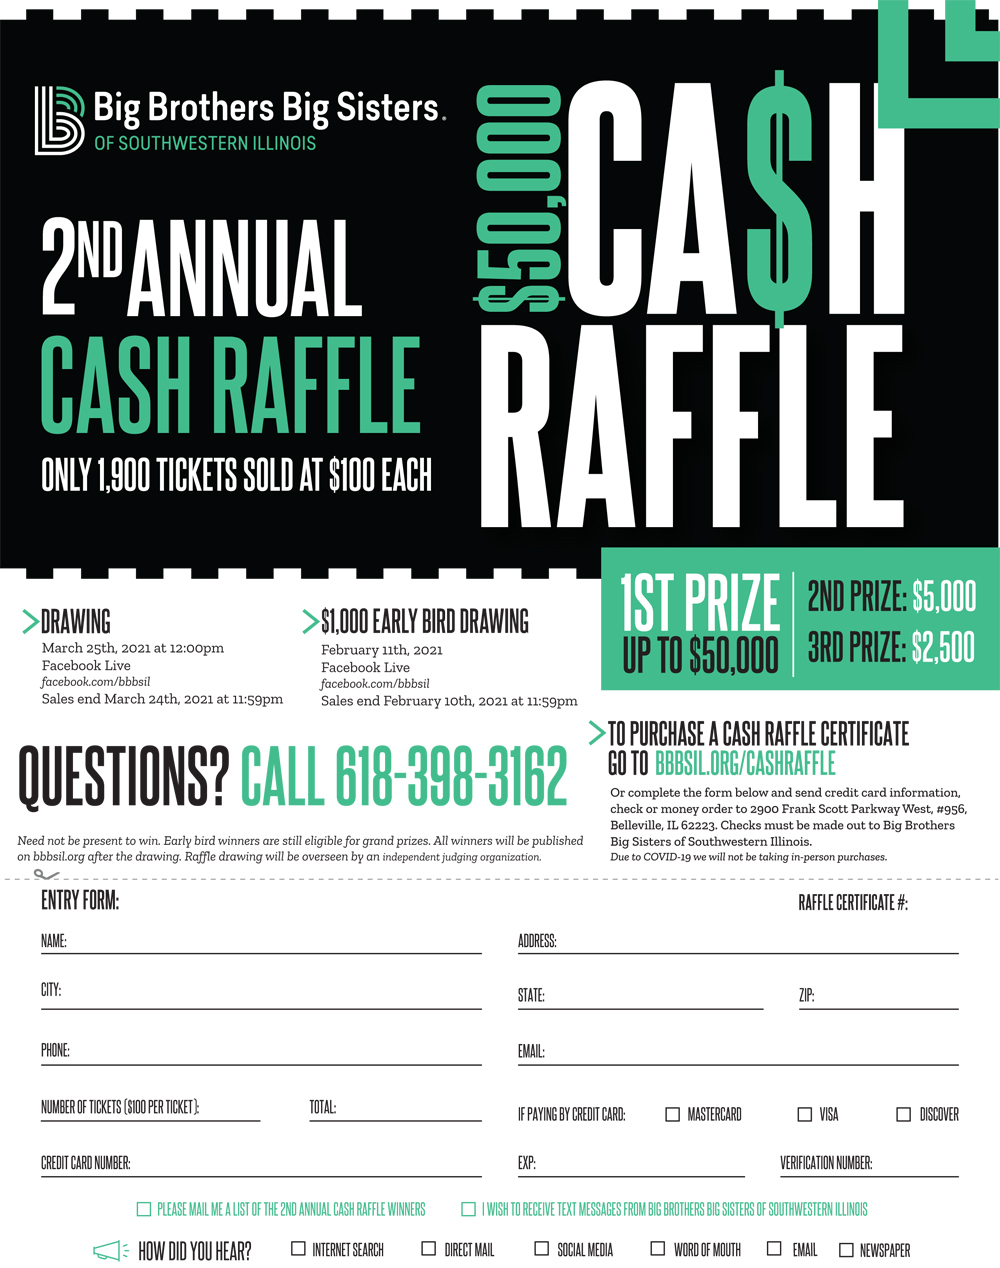 Big Brothers/Big Sisters 2nd Annual Cash Raffle